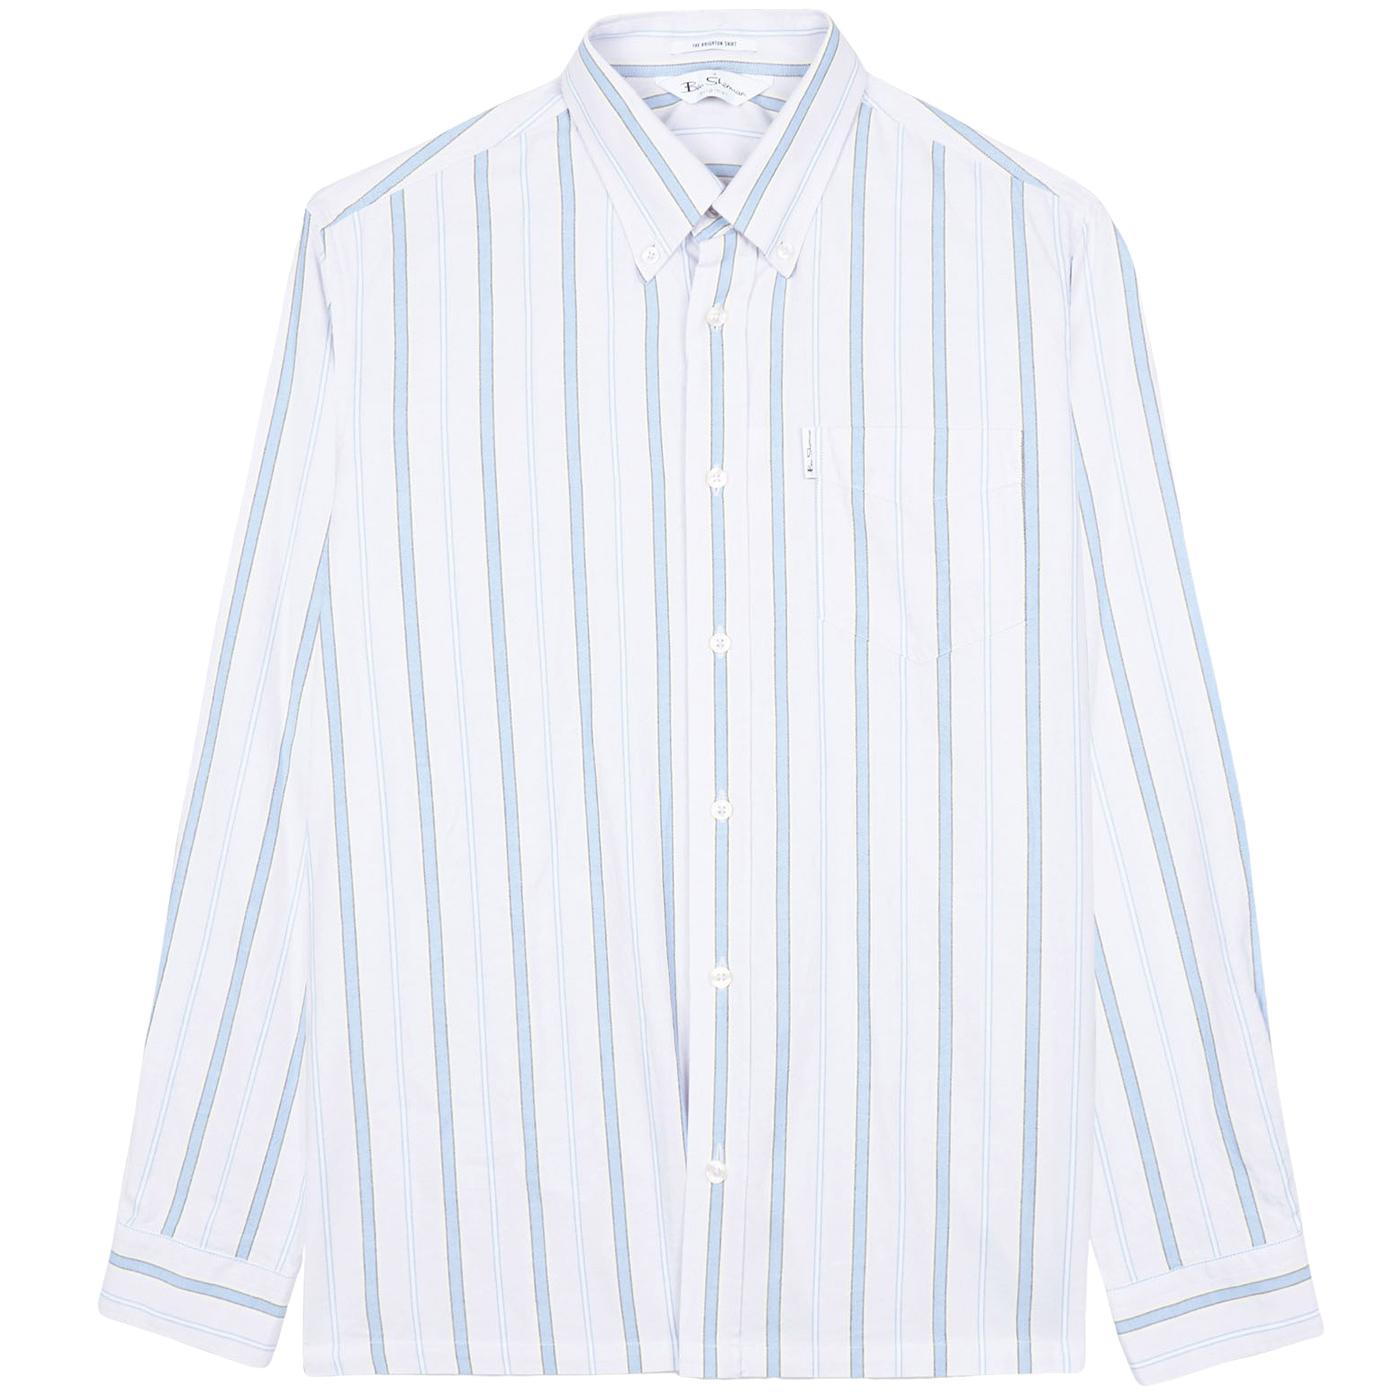 BEN SHERMAN Mod Archive 70s Brighton Stripe Shirt